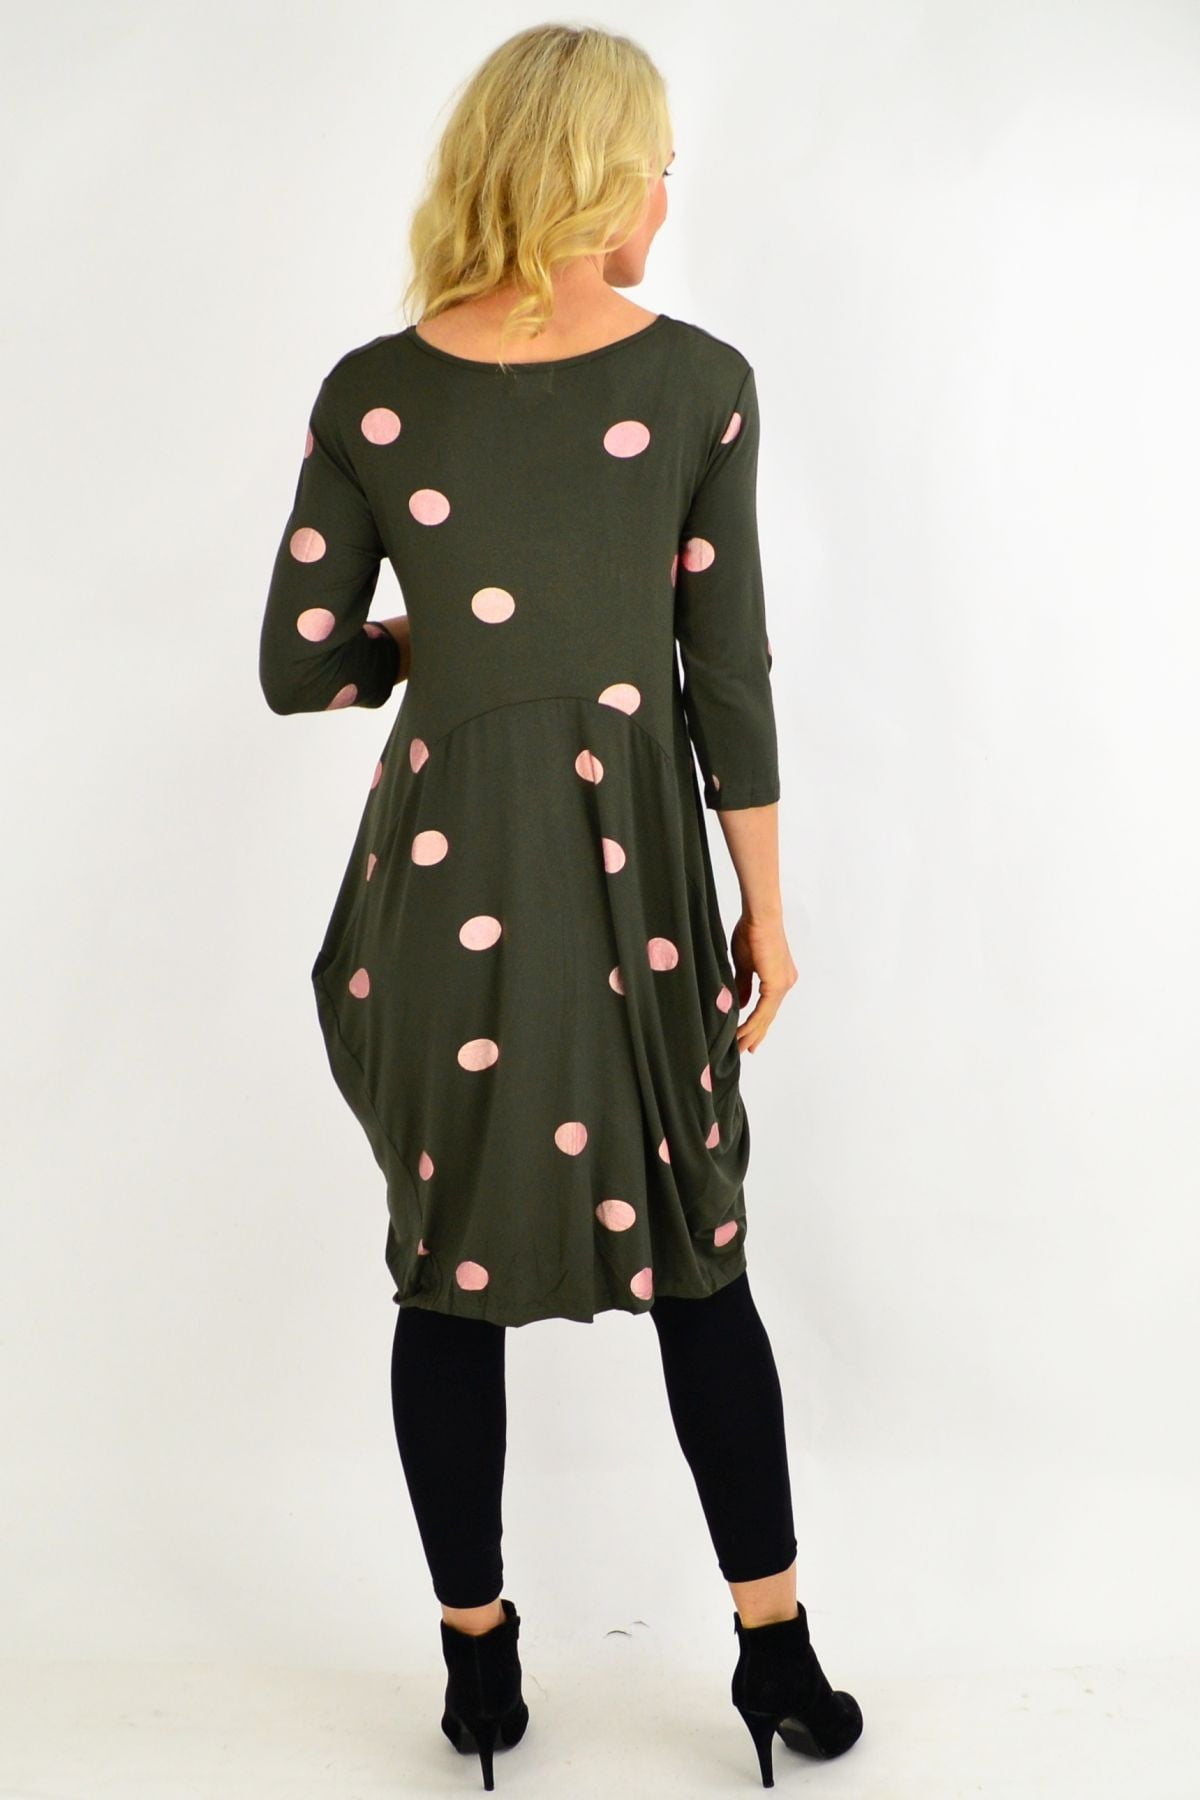 Khaki Spot Cocoon Tunic Dress | I Love Tunics | Tunic Tops | Tunic | Tunic Dresses  | womens clothing online